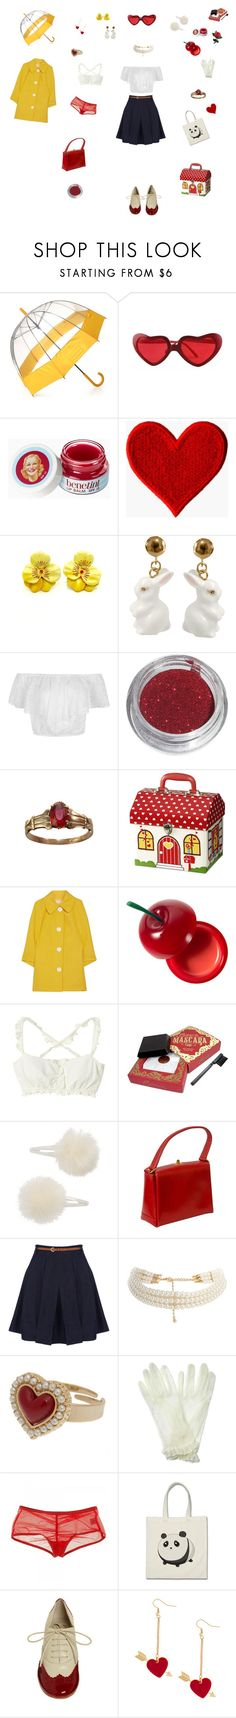 """""""My Baby just cares for me"""" by edit-hansson ❤ liked on Polyvore featuring Hunter, Nach Bijoux, Michael Kors, Tony Moly, Topshop, Gucci, Oasis, ASOS, Accessorize and Only Hearts"""